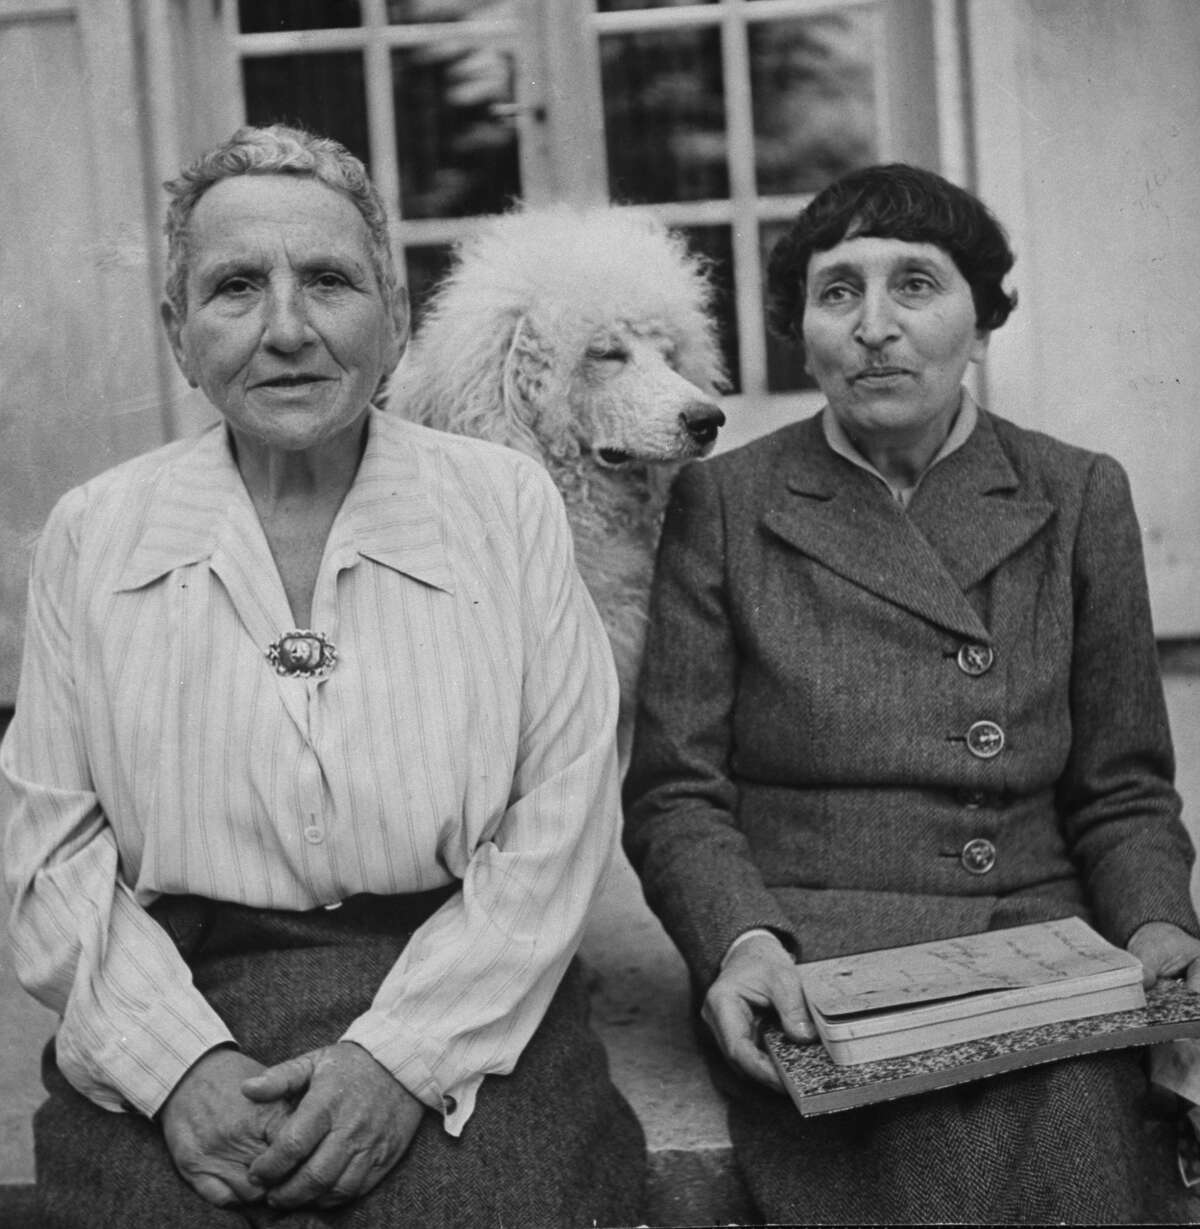 Author Gertrude Stein, left, 70, America's most famous expatriate, posing with her companion Alice B. Toklas and their white poodle on the doorstep of her house. Some say the ghost of Toklas is haunting the Sorrento Hotel. Photo taken Sept. 1, 1944.